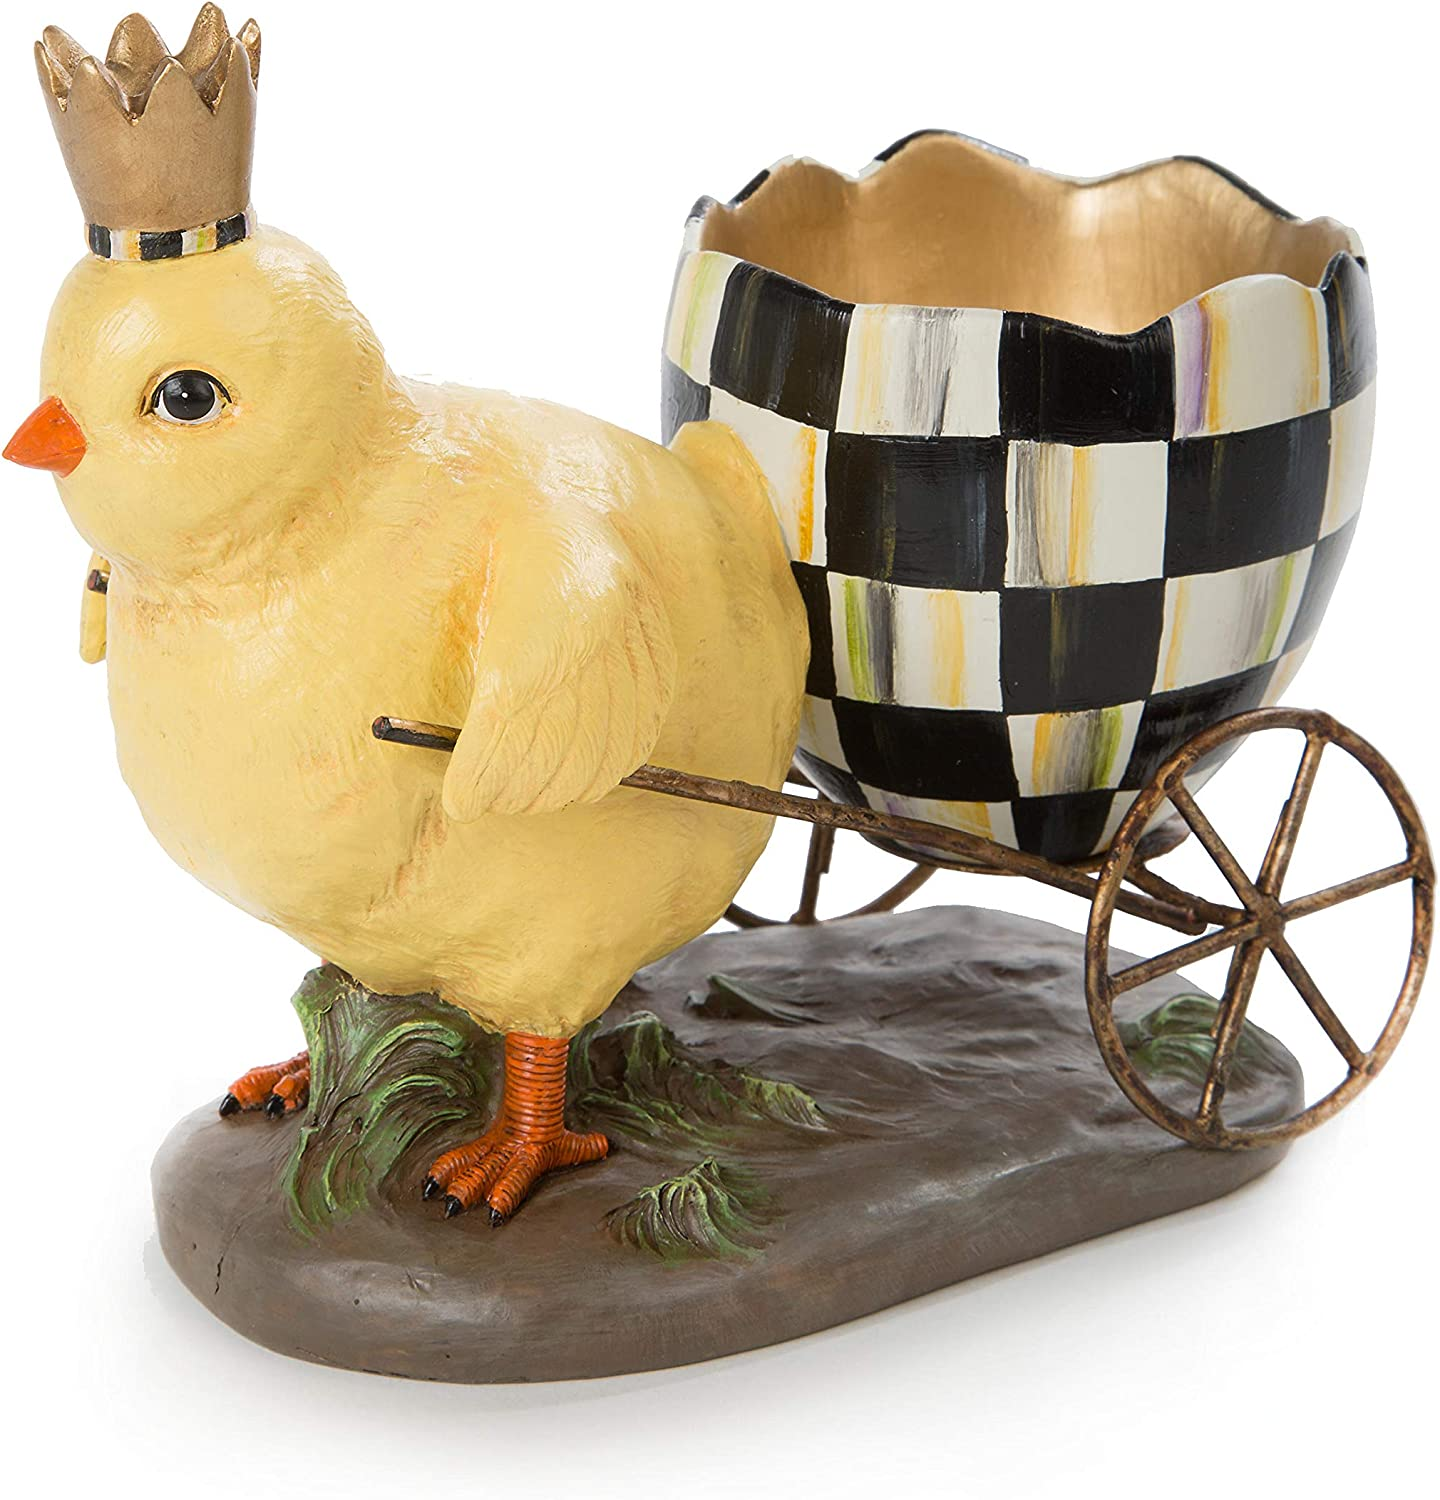 MacKenzie-Childs Which Came First? Chicken and Egg Carriage, Resin Decorations, Summer and Spring Table Decorations for The Home